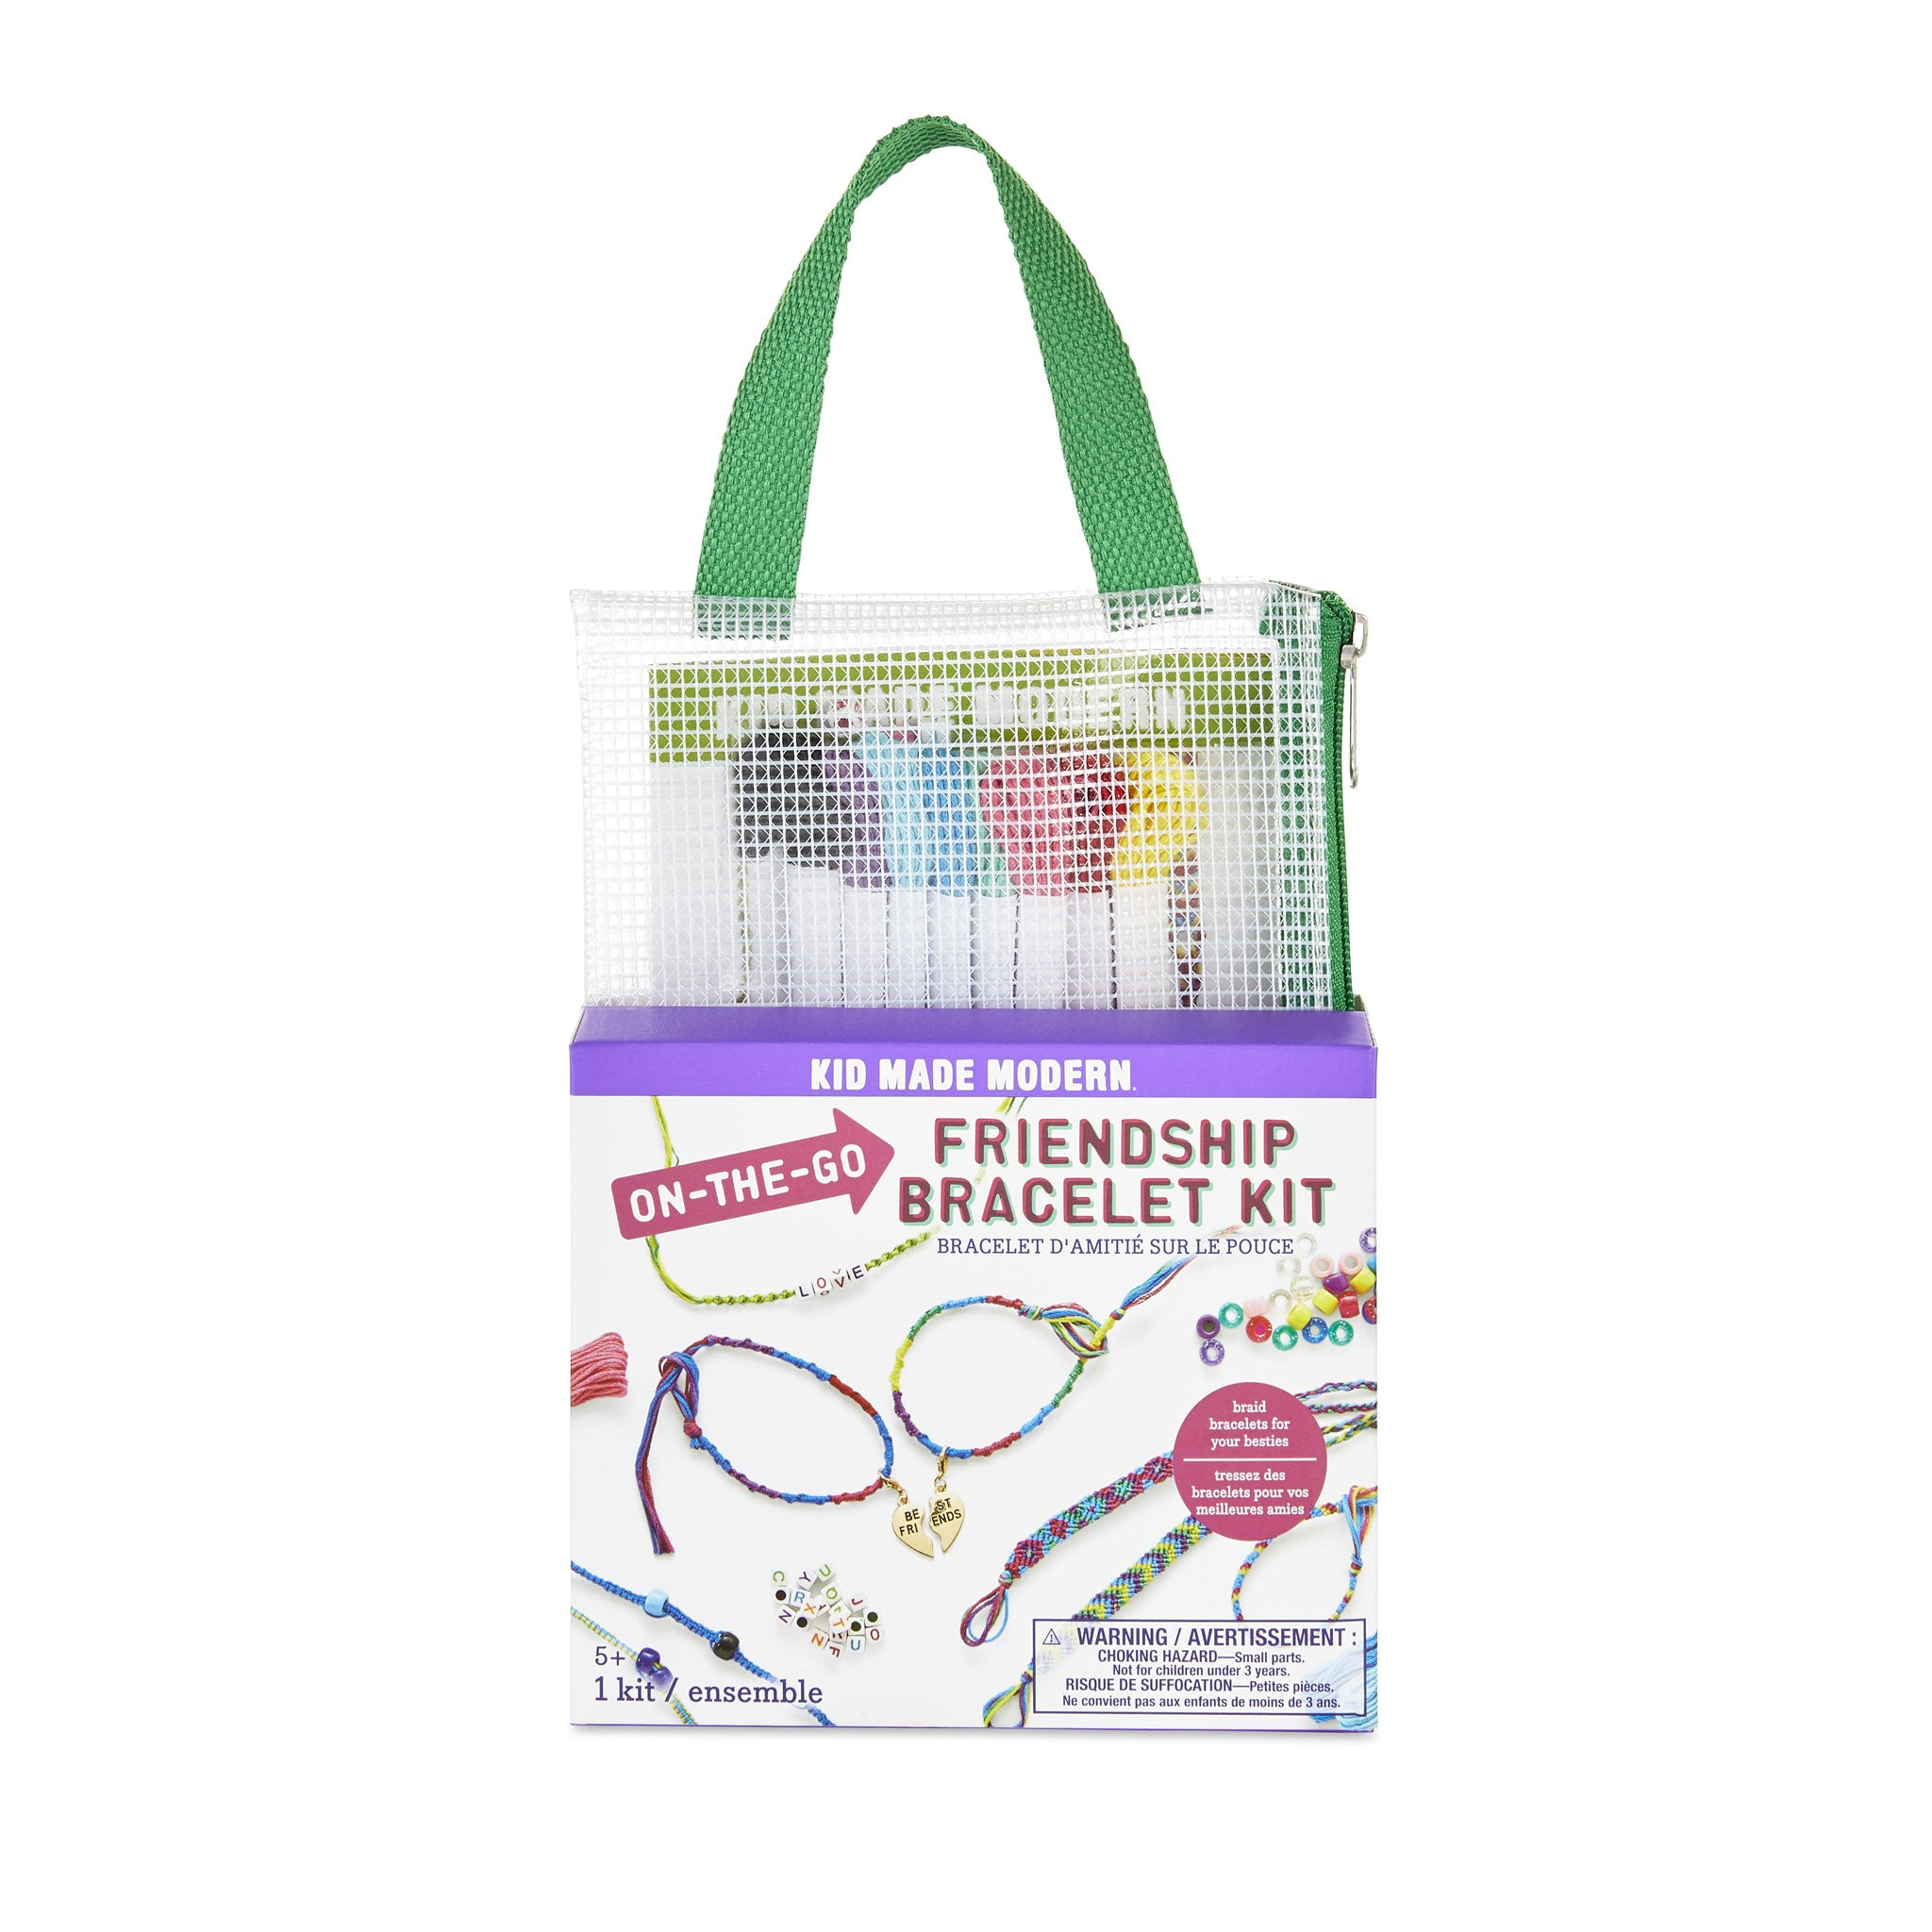 On-The-Go Friendship Bracelet Kit